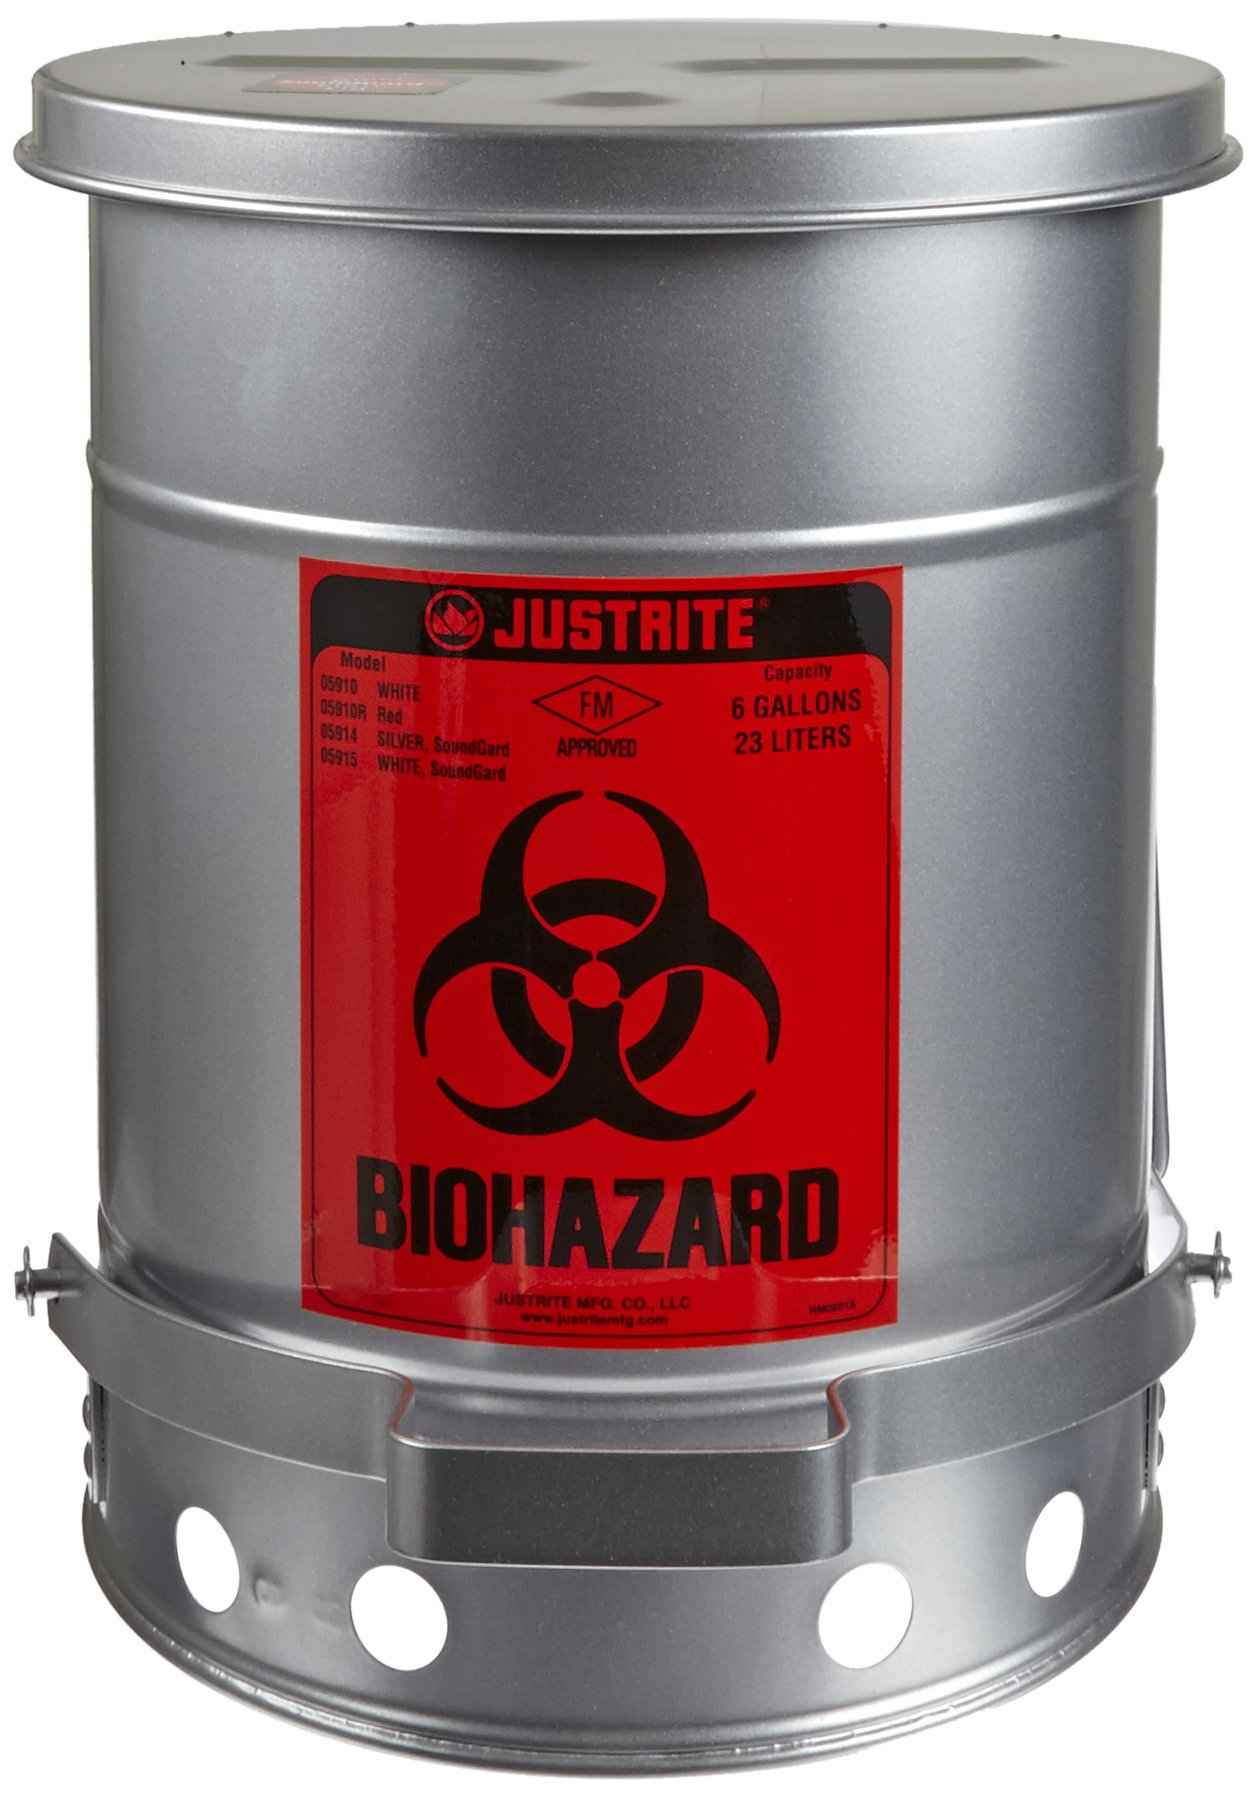 Justrite 05914 SoundGuard Steel Biohazard Waste Container with Foot Operated Cover, 6 Gallon Capacity, 11-7/8'' OD x 15-7/8'' Height, Silver